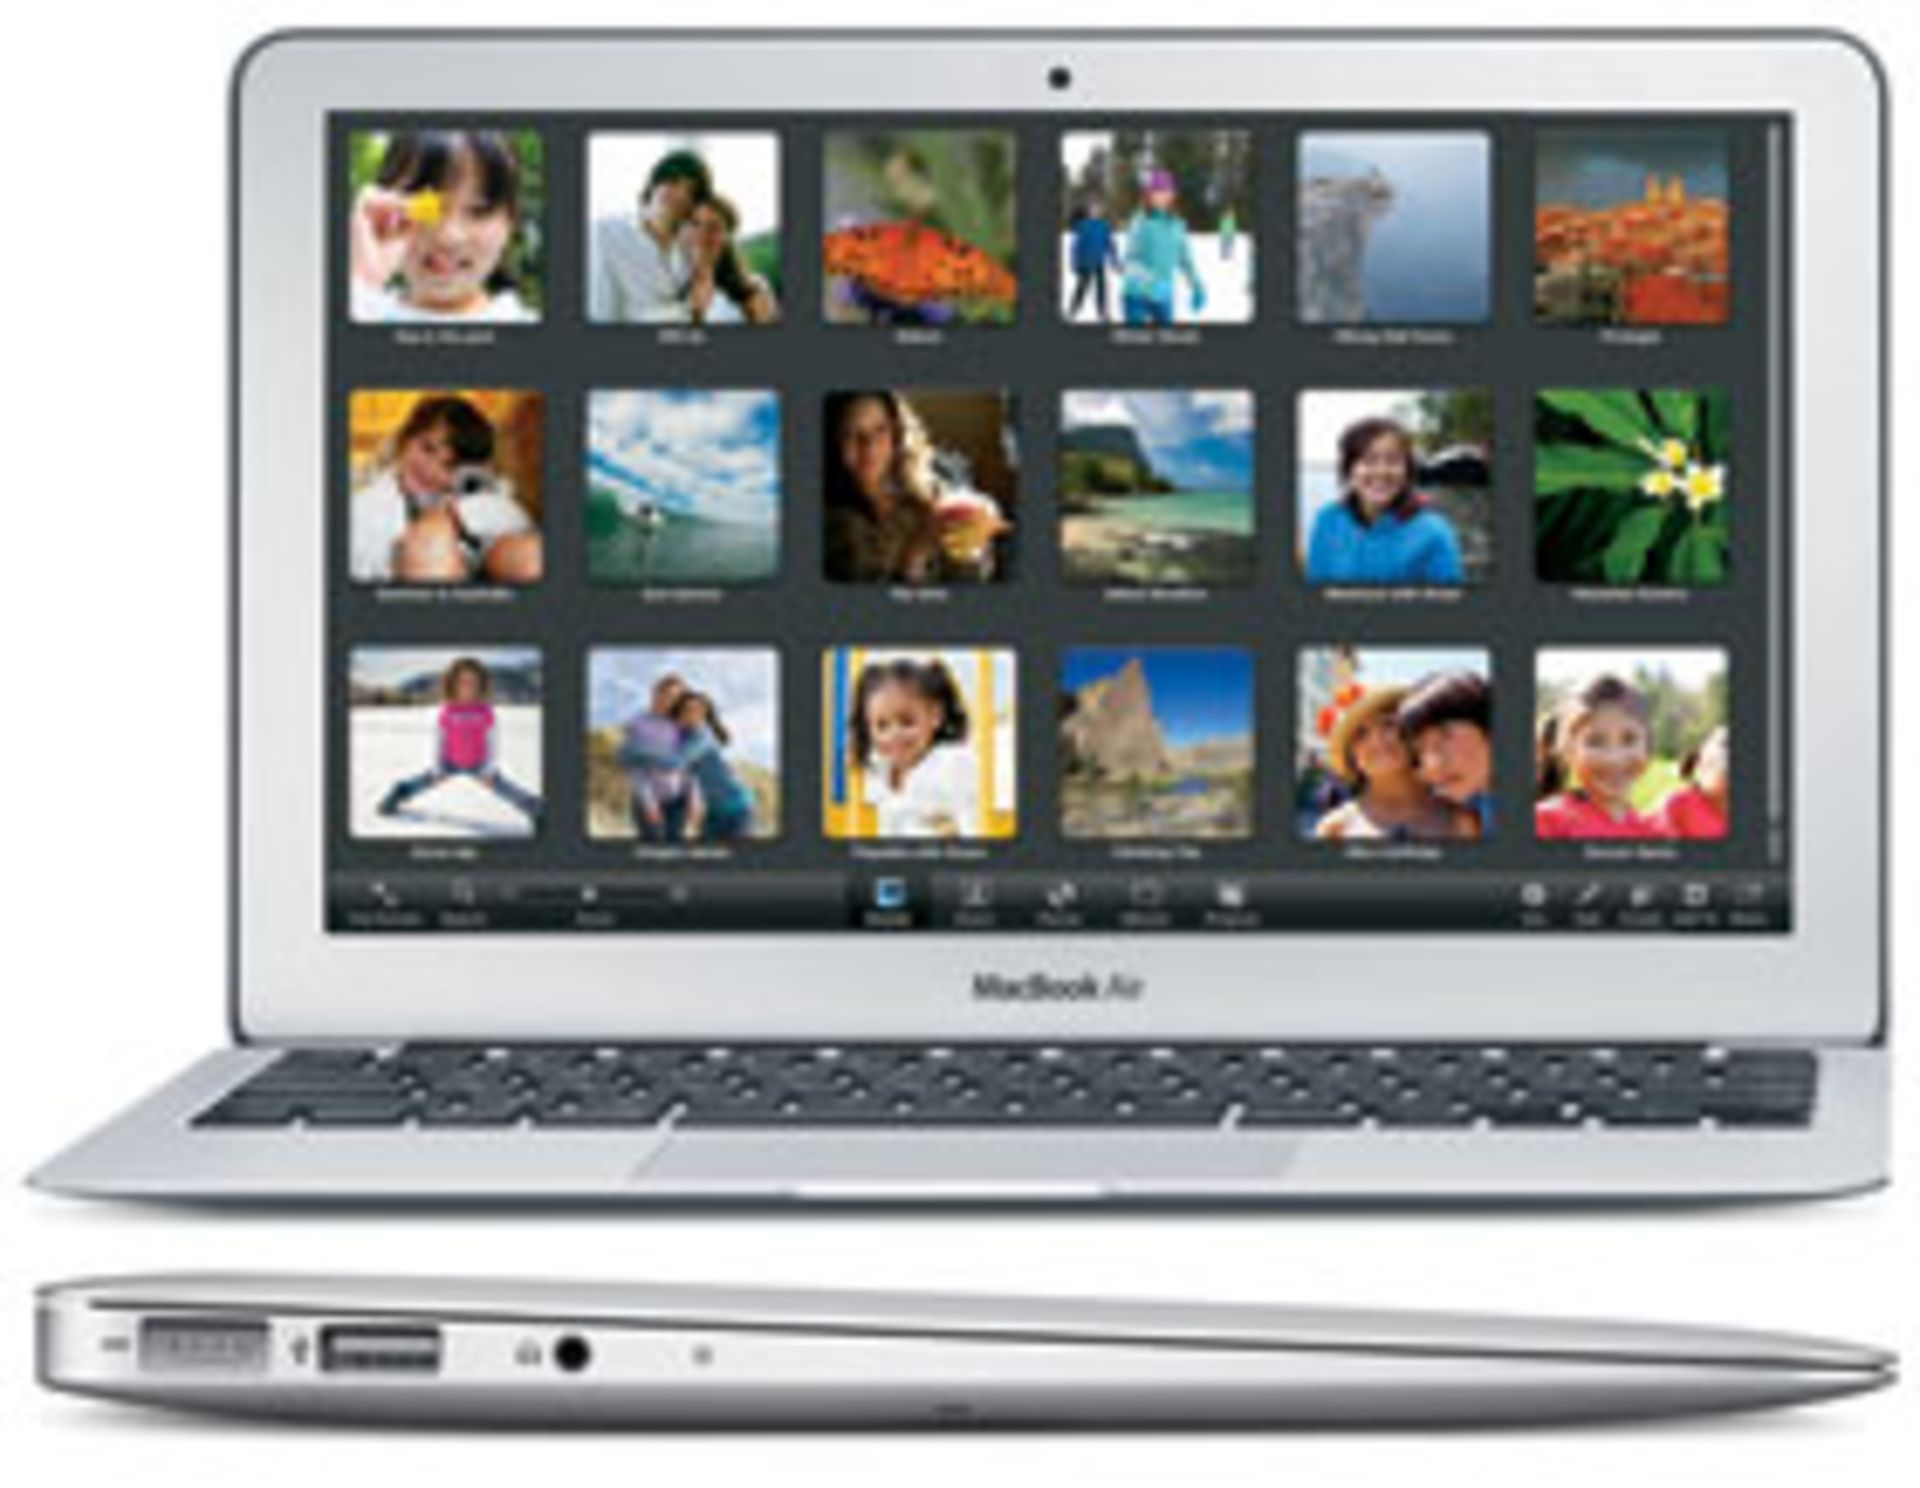 Lot 60029 - V Grade B Macbook Air 11.6 Inch Core 2 Duo - 64GB SSD - A1370 - Available Approx 7 Working Days